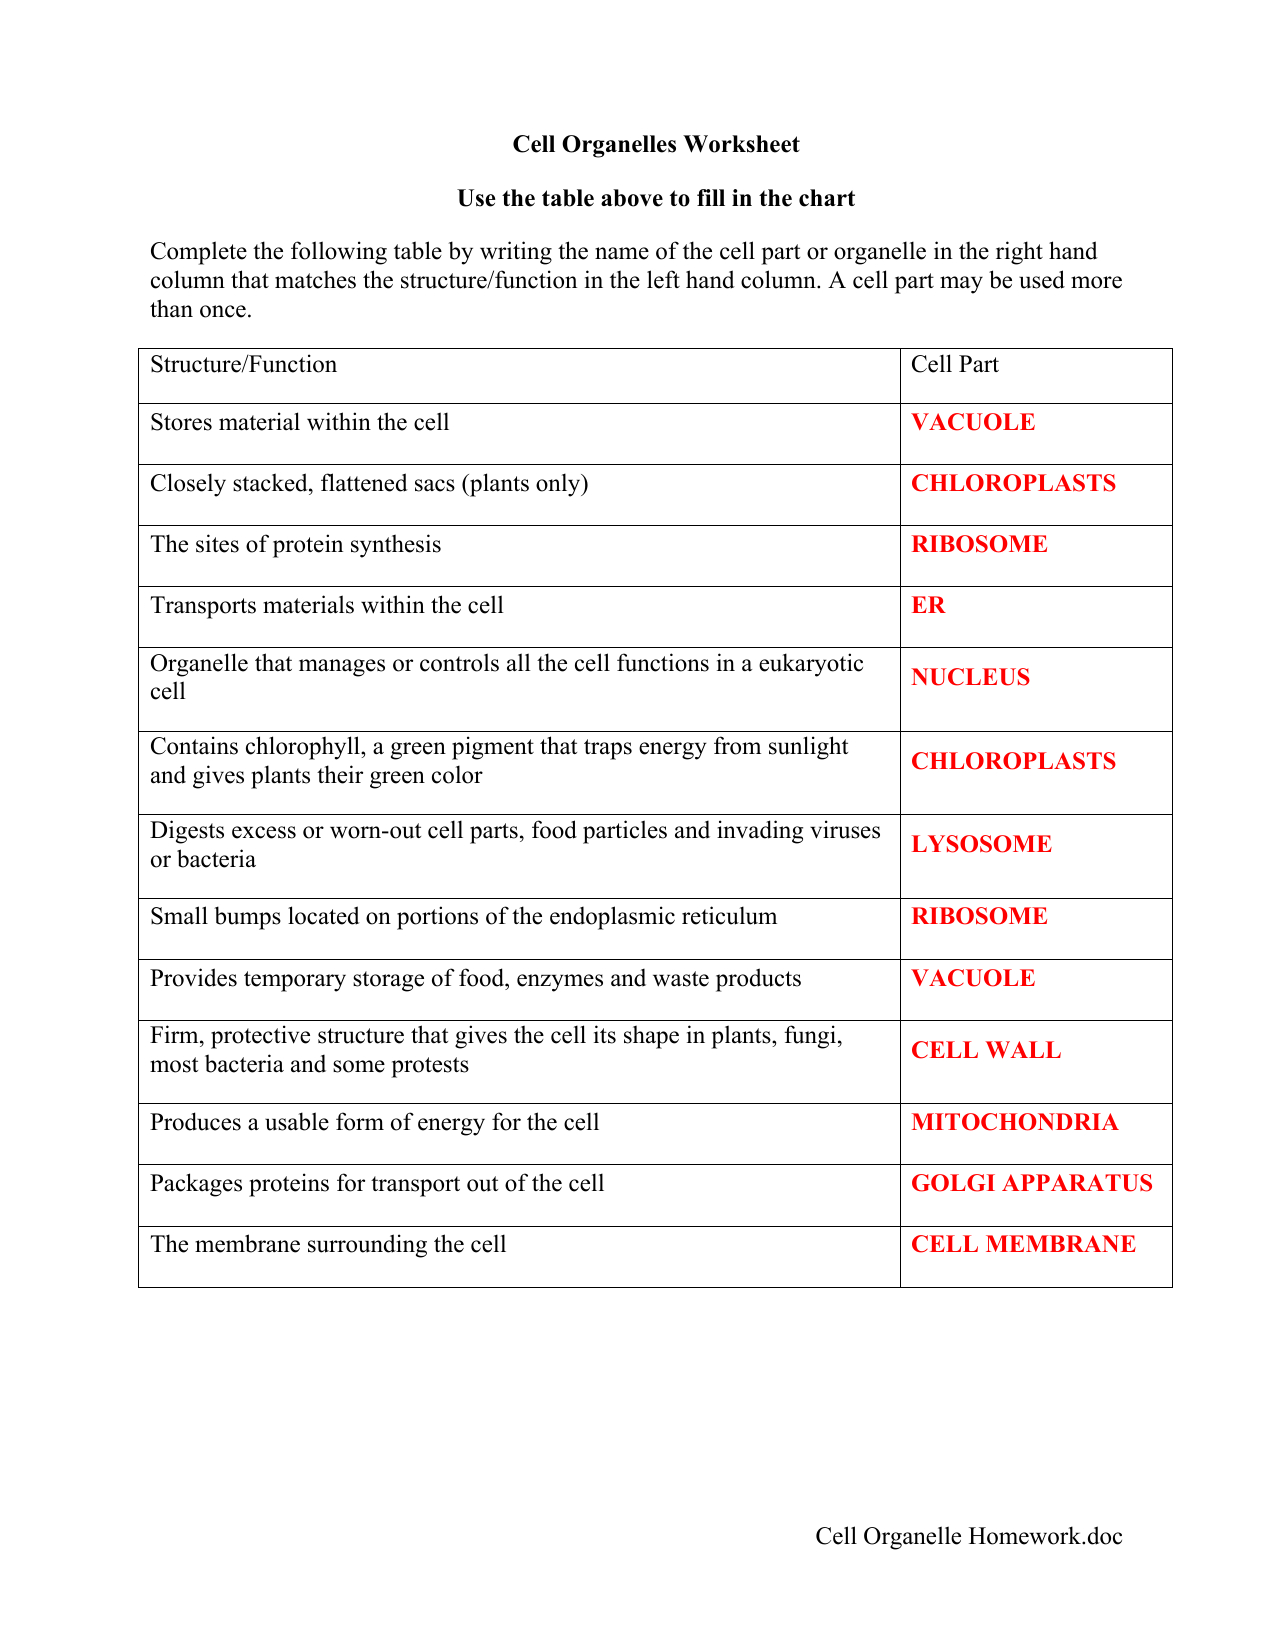 Cell Parts And Functions Worksheet Answers